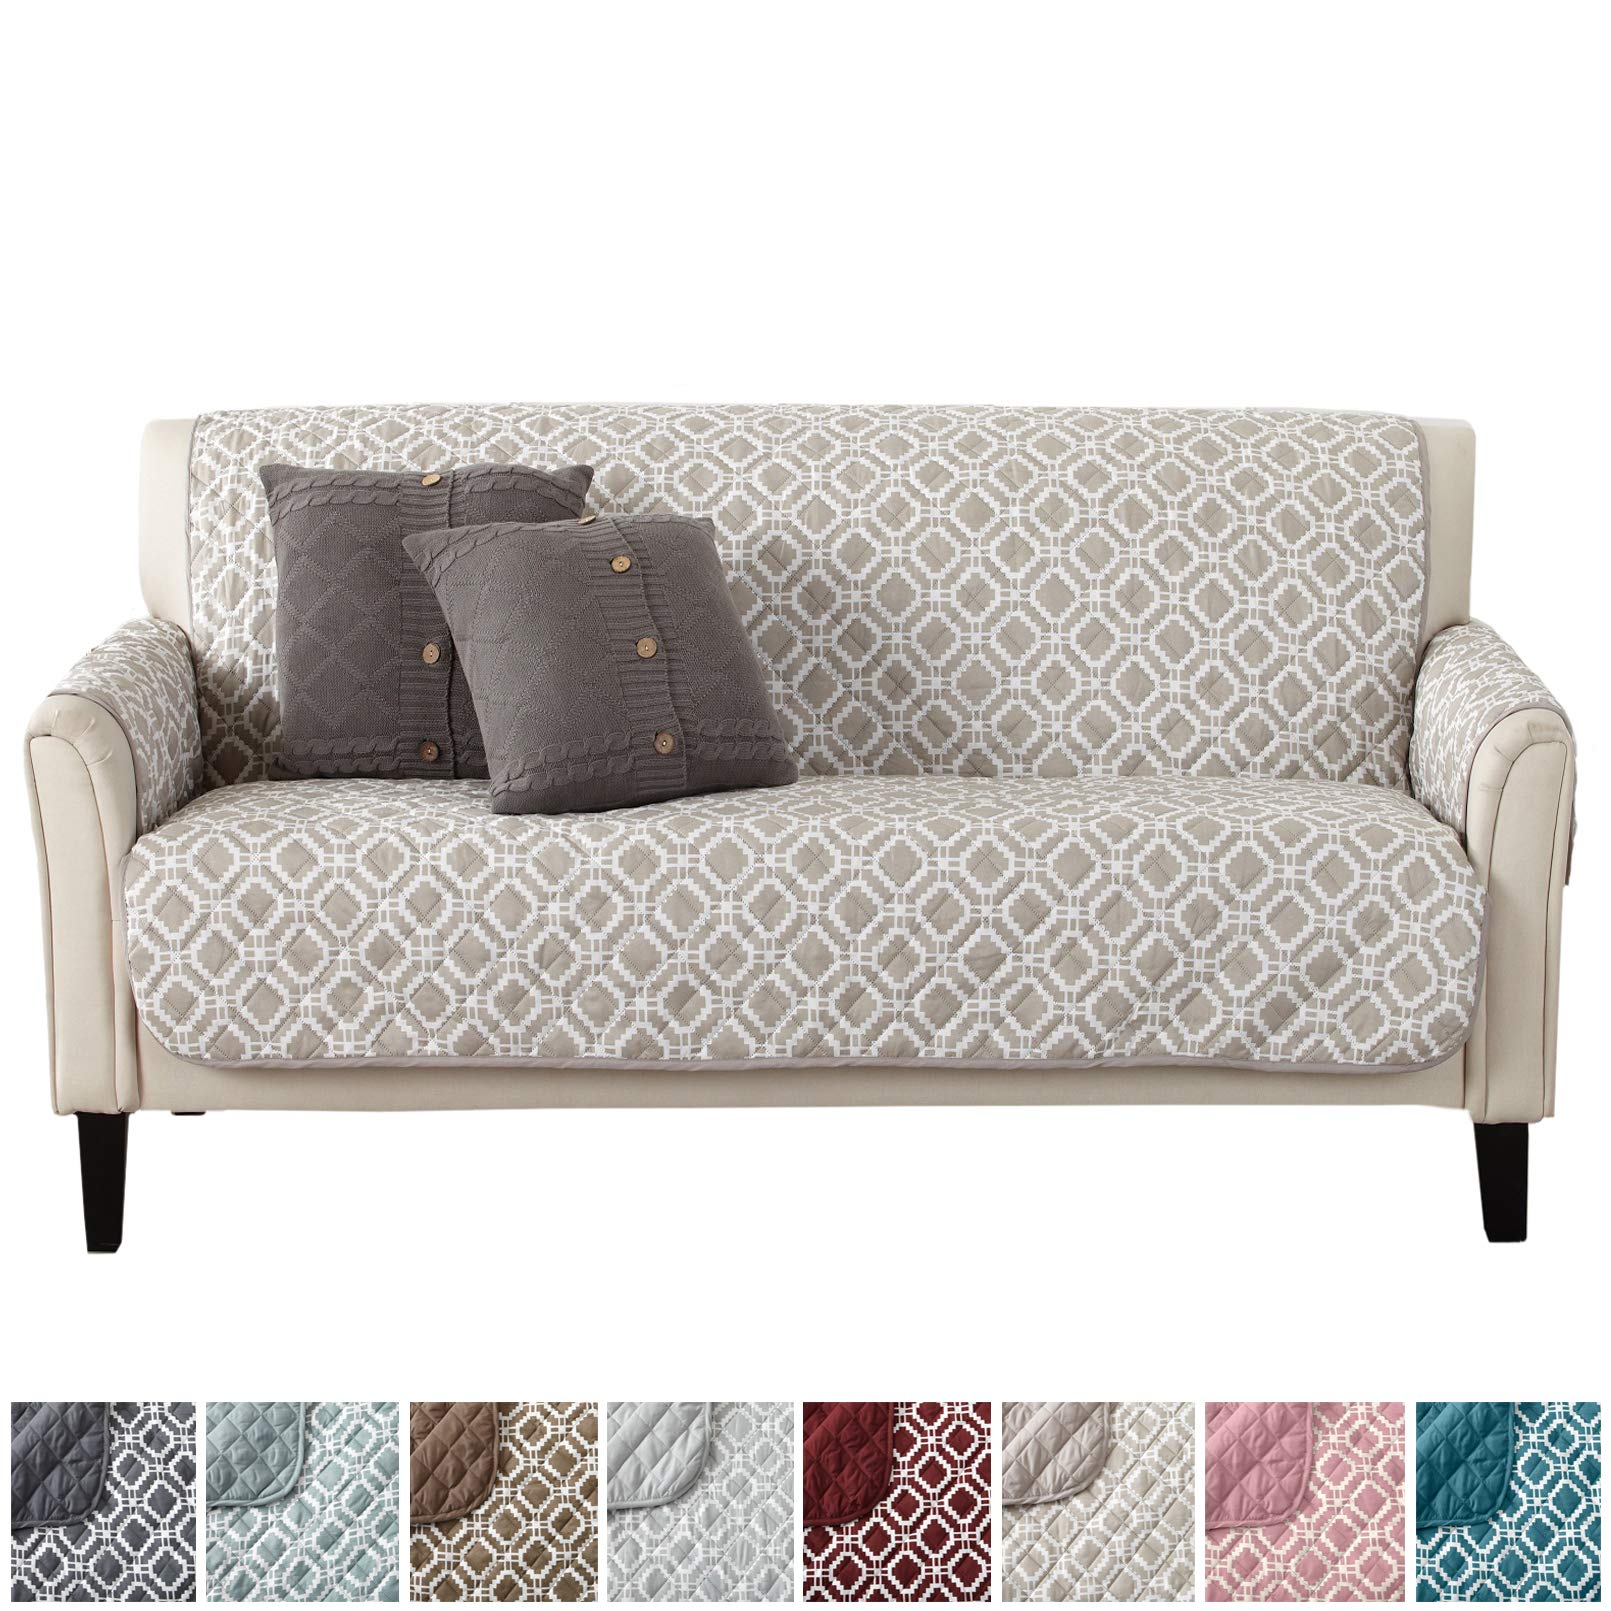 Modern Printed Reversible Stain Resistant Furniture Protector with Geometric Design. Perfect Cover for Pets and Kids. Adjustable Elastic Straps Included. Liliana Collection (Sofa, Silver Cloud) by Great Bay Home